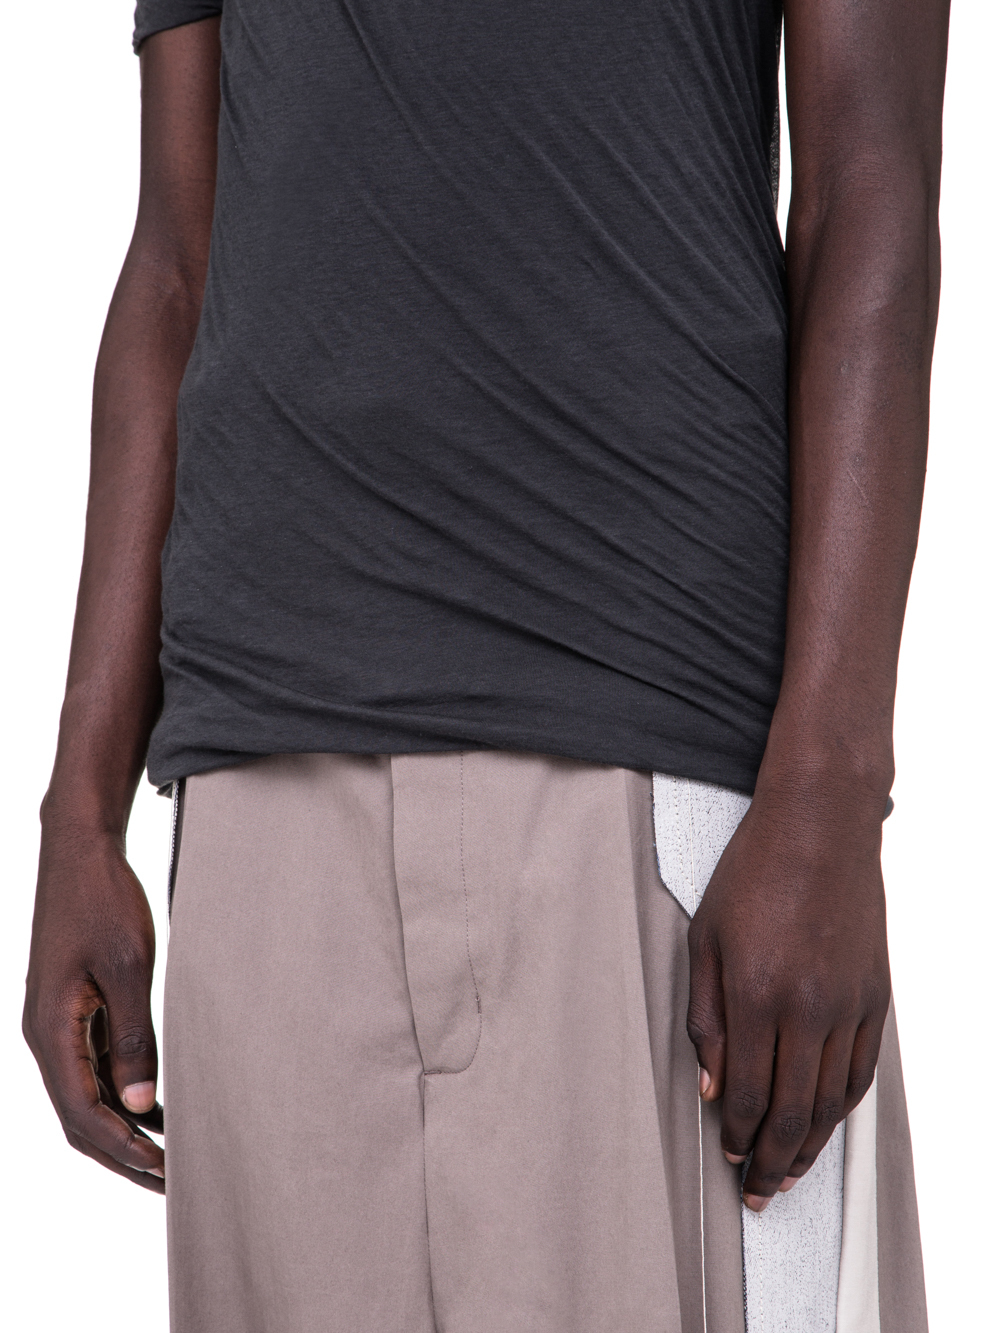 RICK OWENS SS19 BABEL DOUBLE SHORTSLEEVE TEE IN BLUJAY BLUE UNSTABLE COTTON